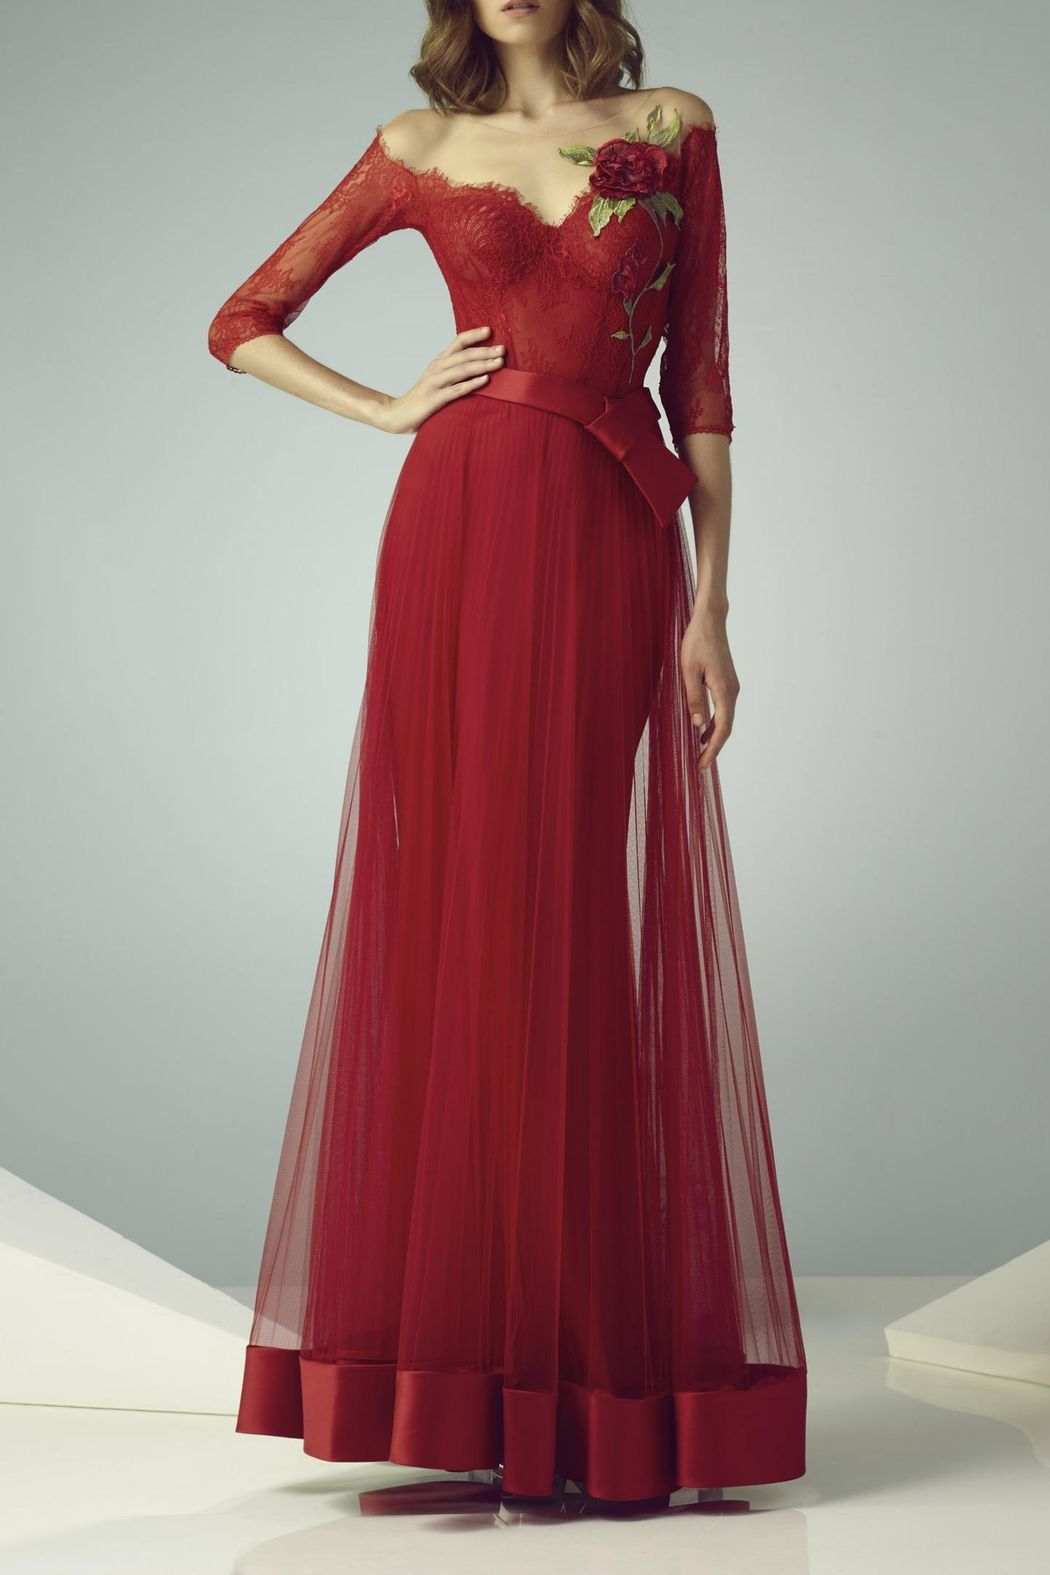 Gemy maalouf illusion evening gown illusions gowns and trumpets